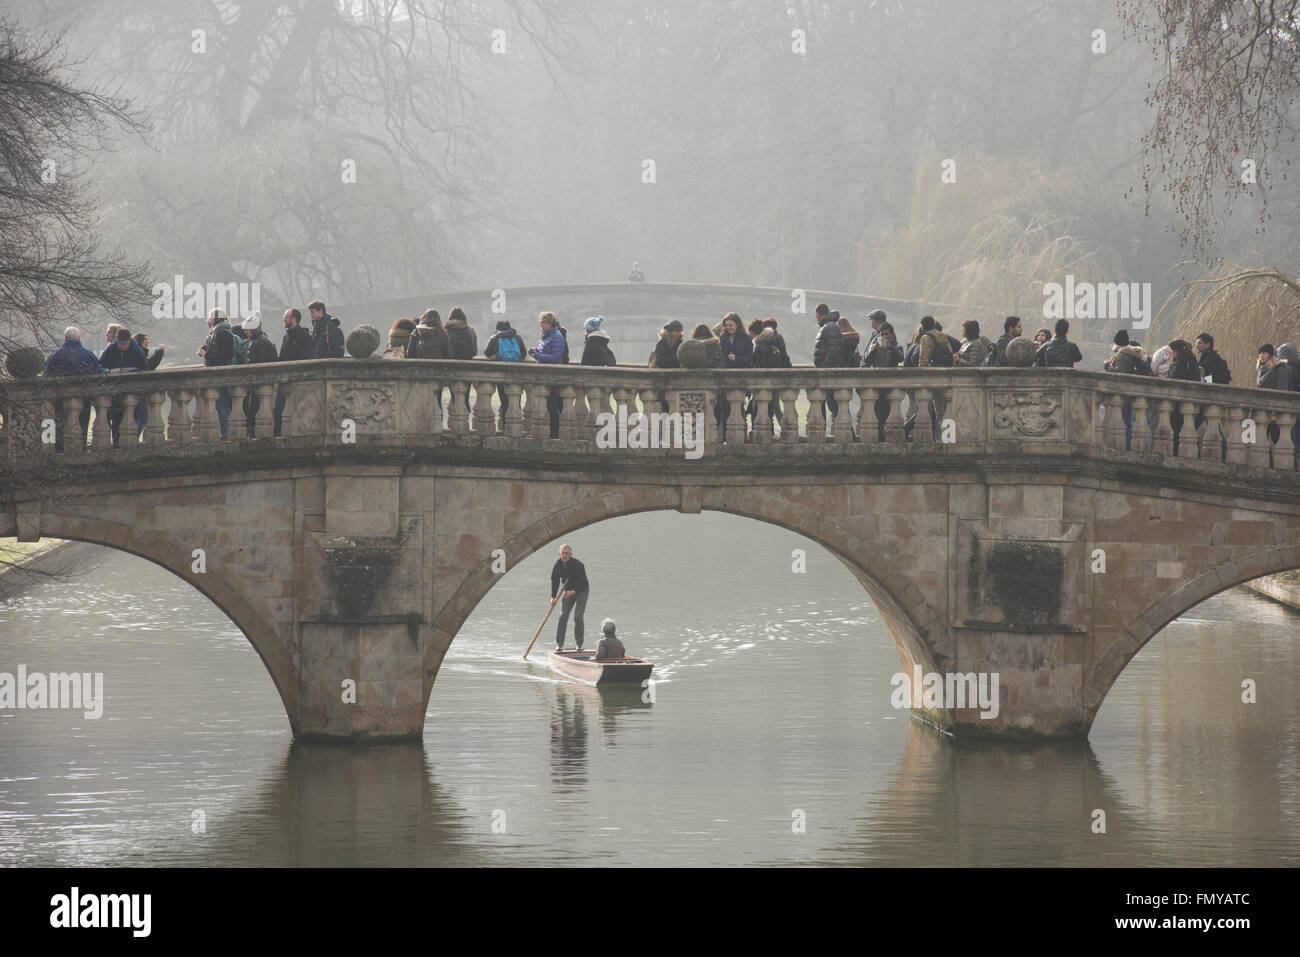 Cambridge, UK. 13th March, 2016. UK Weather: Cambridge misty River Cam and visitors punting. 13 March 2016 Student - Stock Image